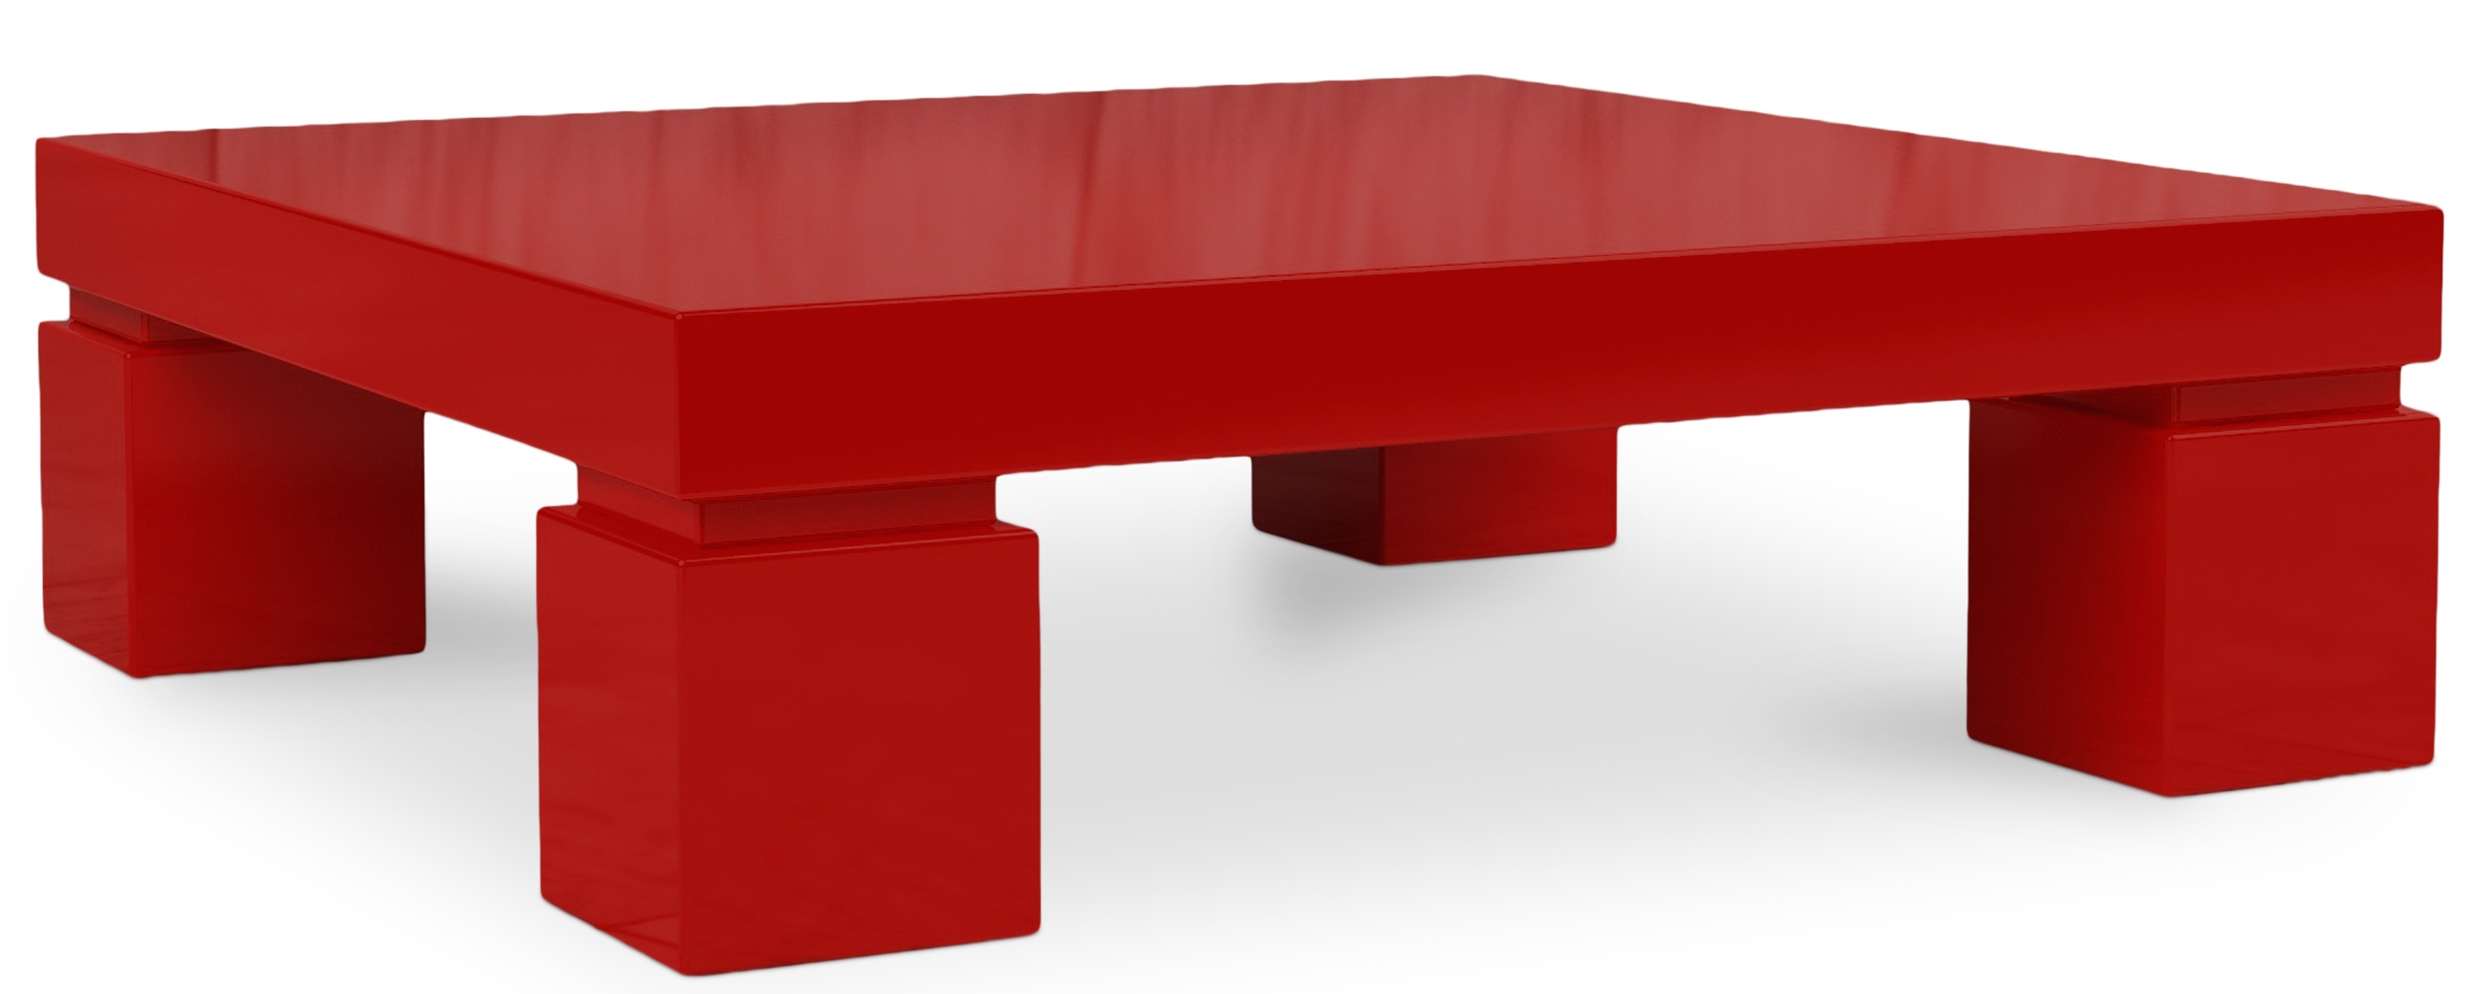 Table Basse Carr E Laqu E Rouge Kare